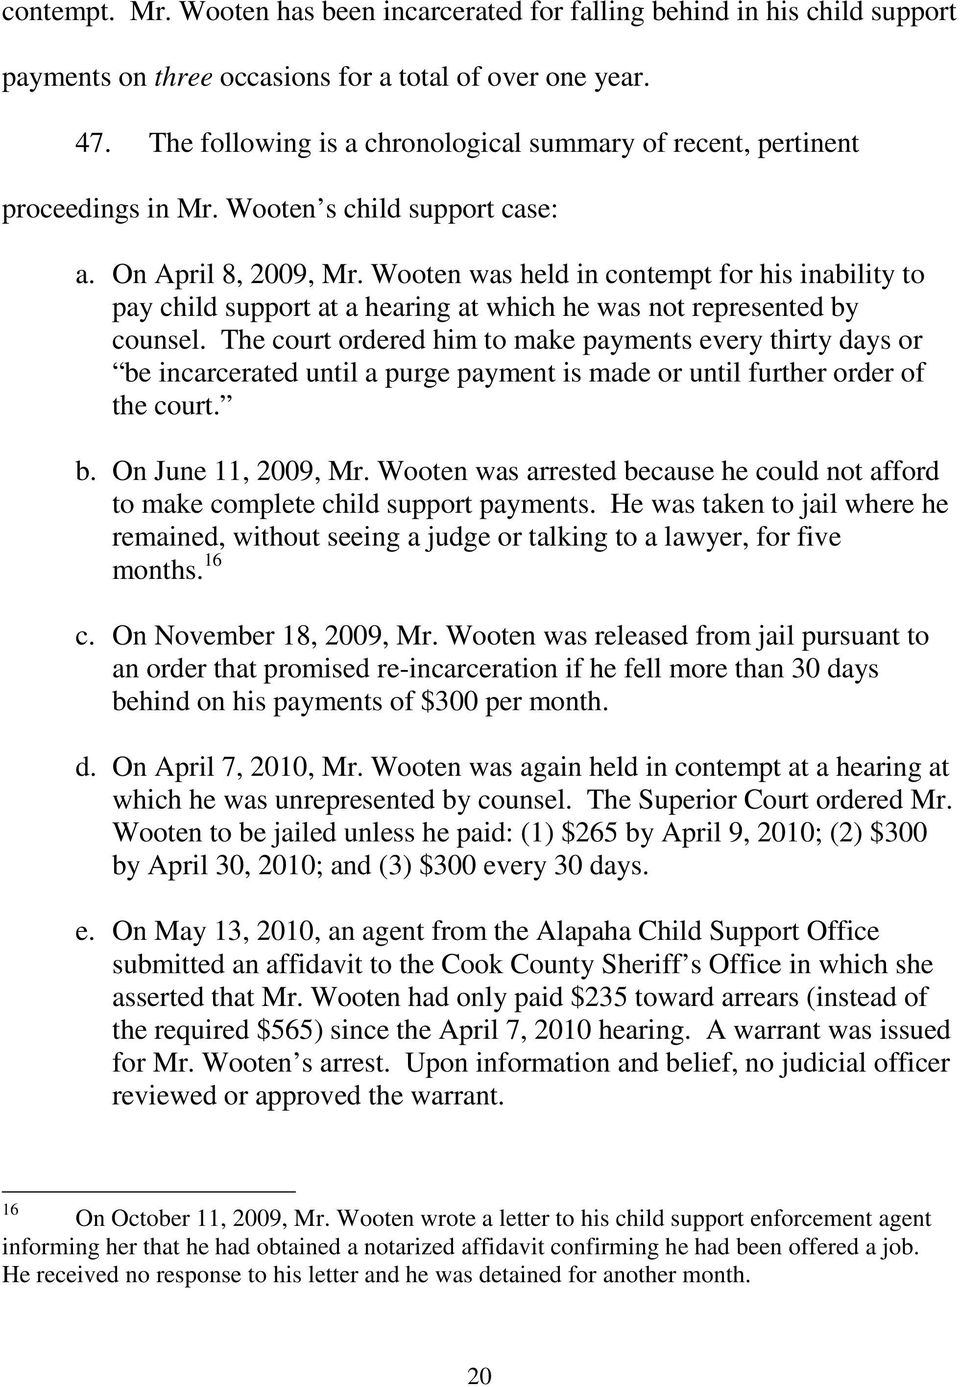 Wooten was held in contempt for his inability to pay child support at a hearing at which he was not represented by counsel.